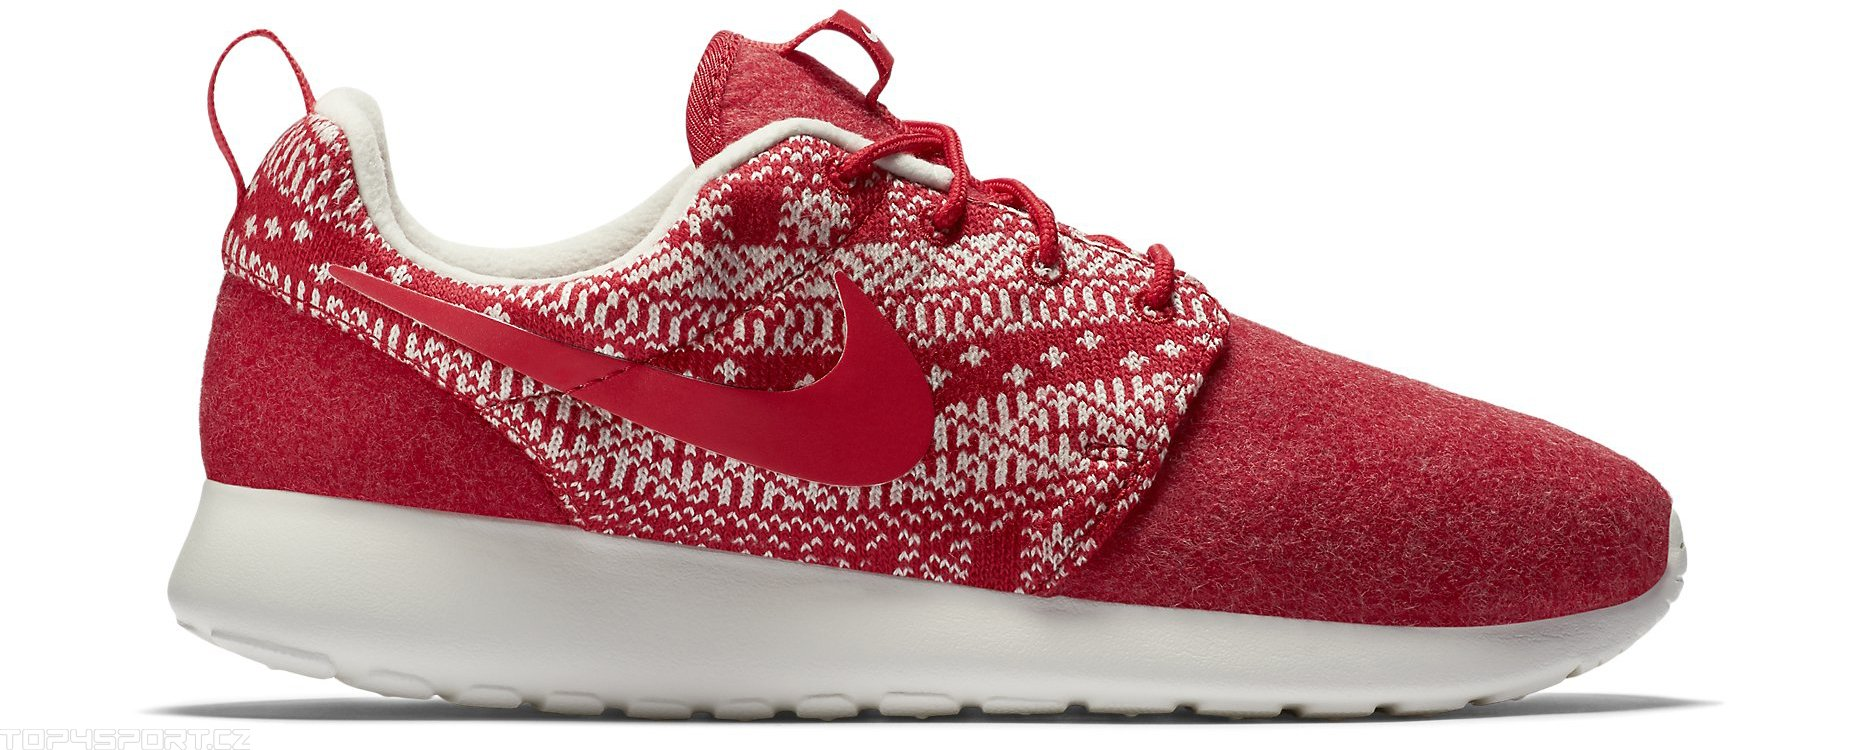 Obuv Nike WMNS ROSHE ONE WINTER